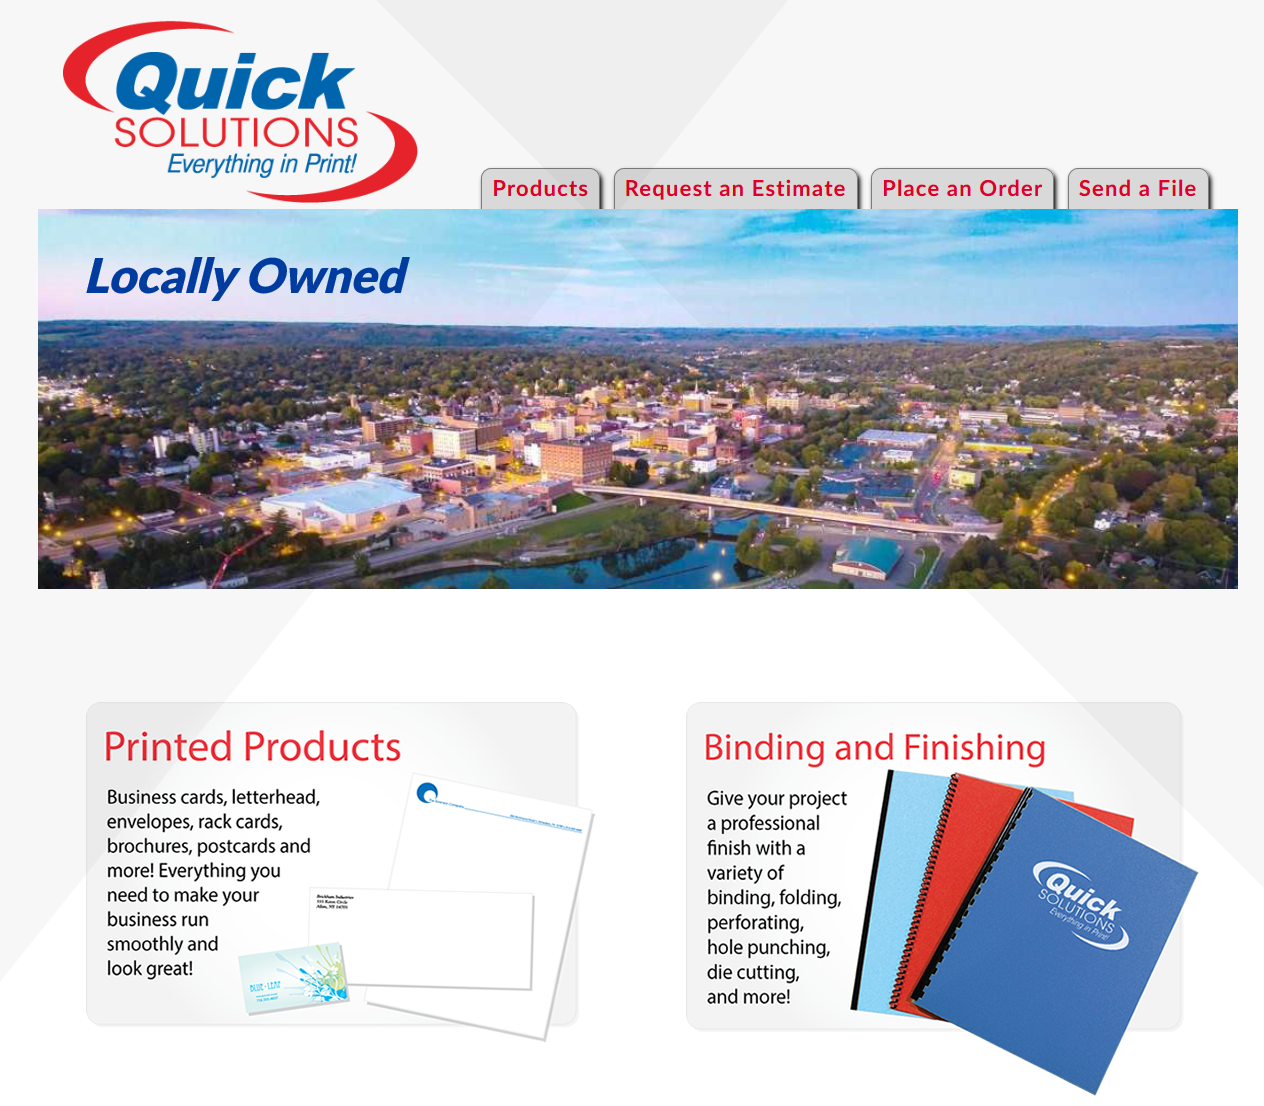 Quick Solutions Printing